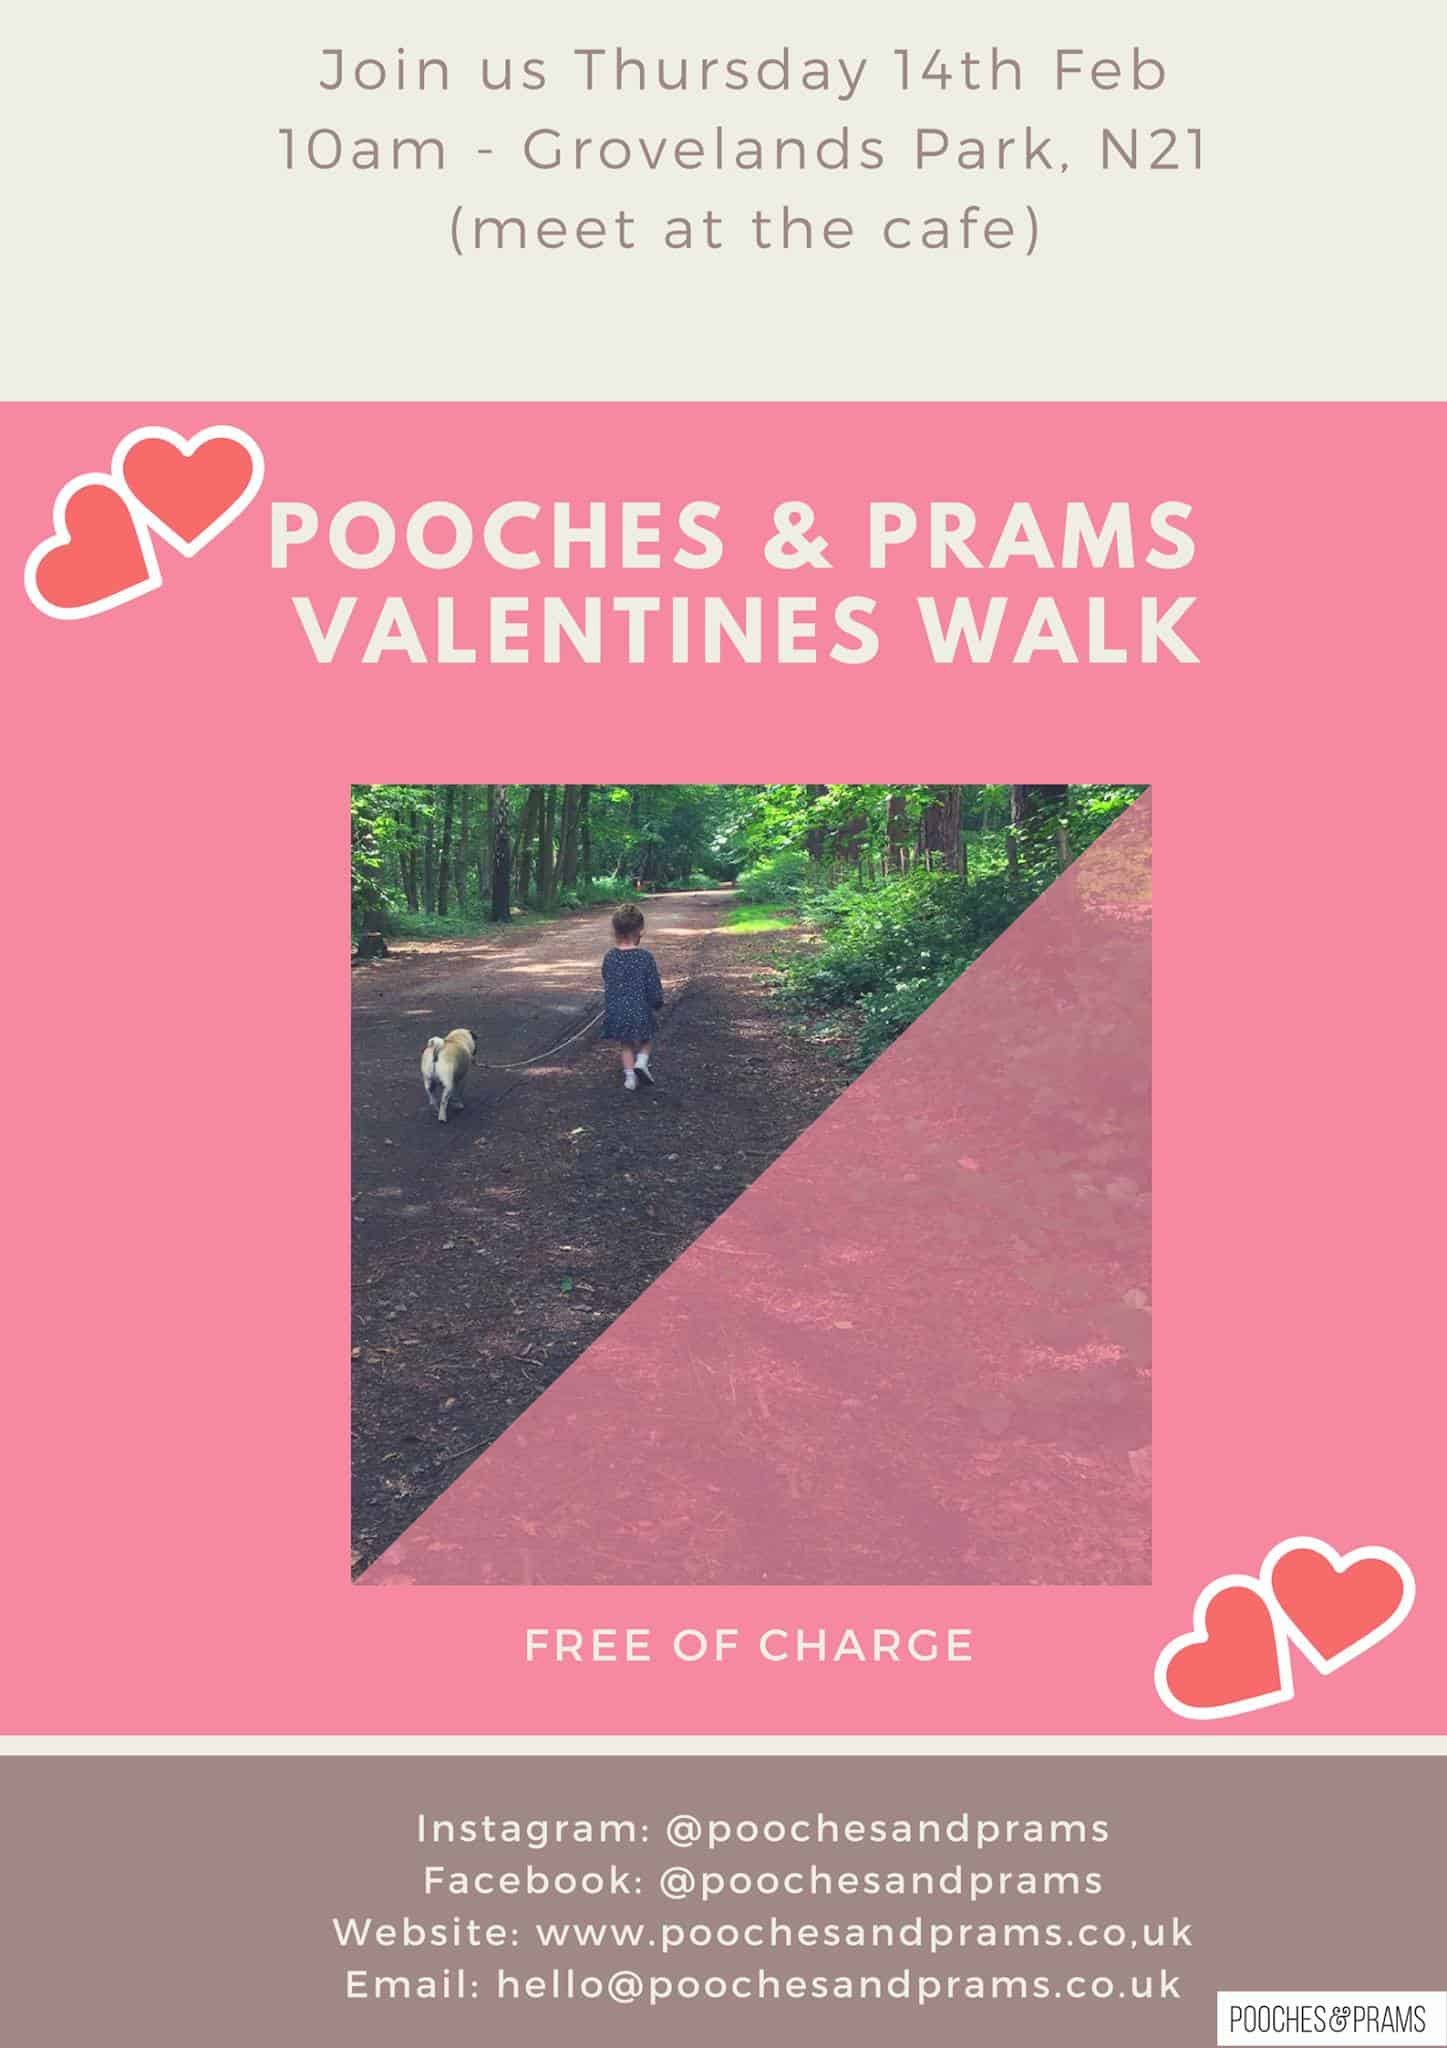 Pooches and Prams Valentines Walk